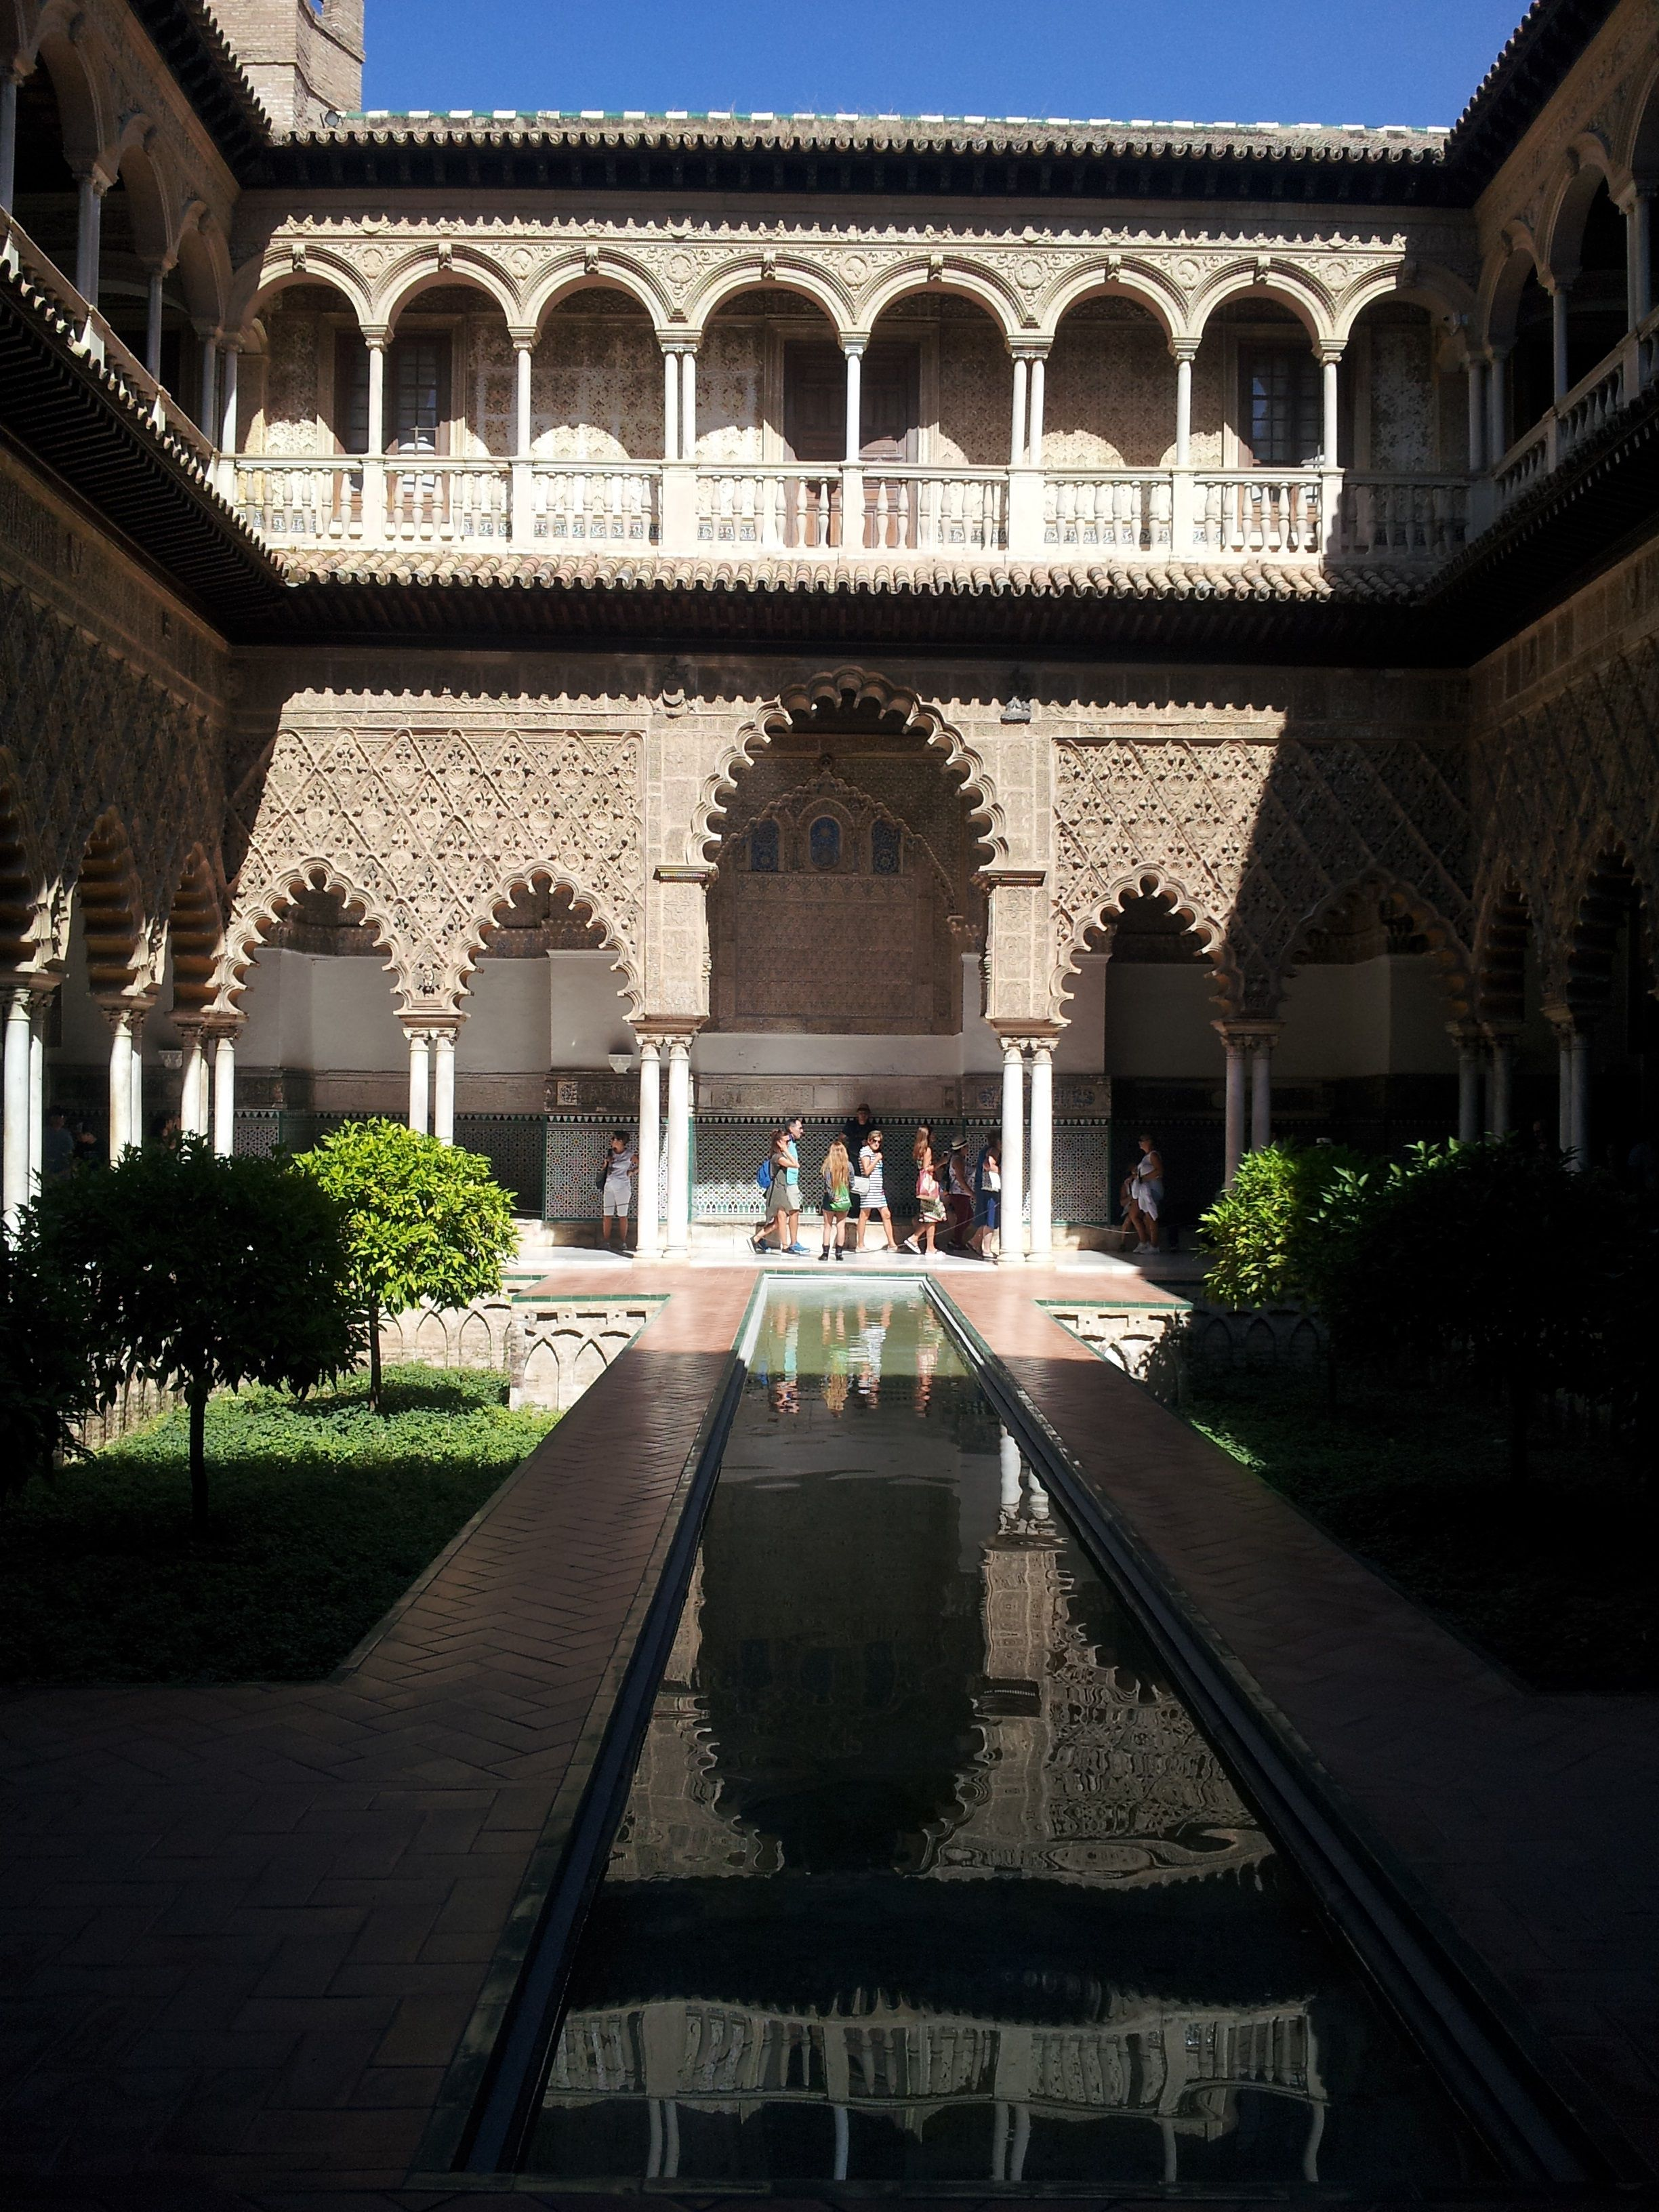 The Alhambara at Granada, Spain